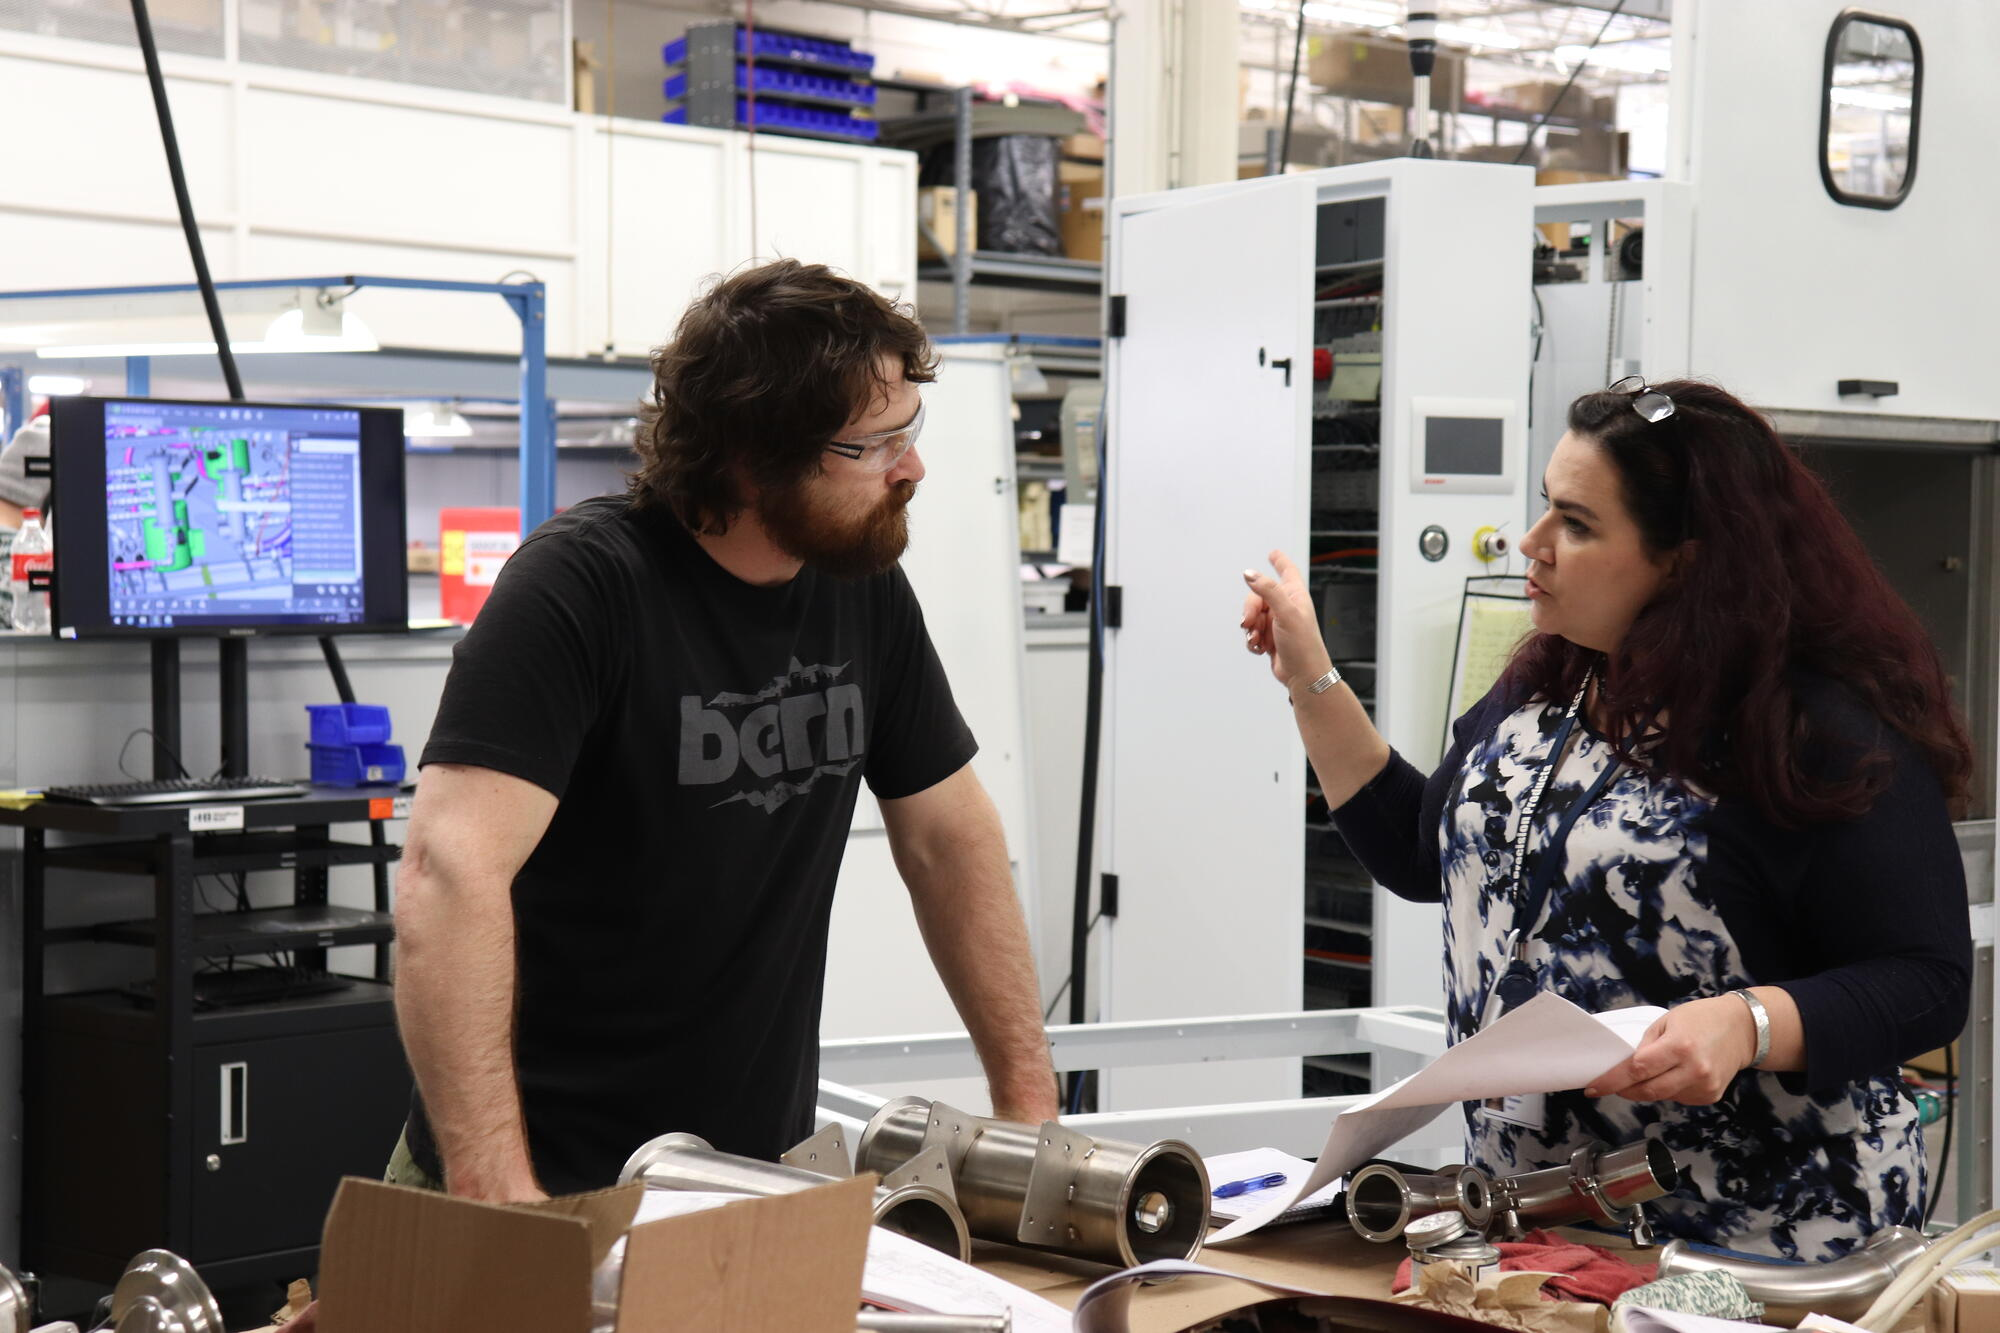 Female Industrial Engineer works with assembler on work instructions.